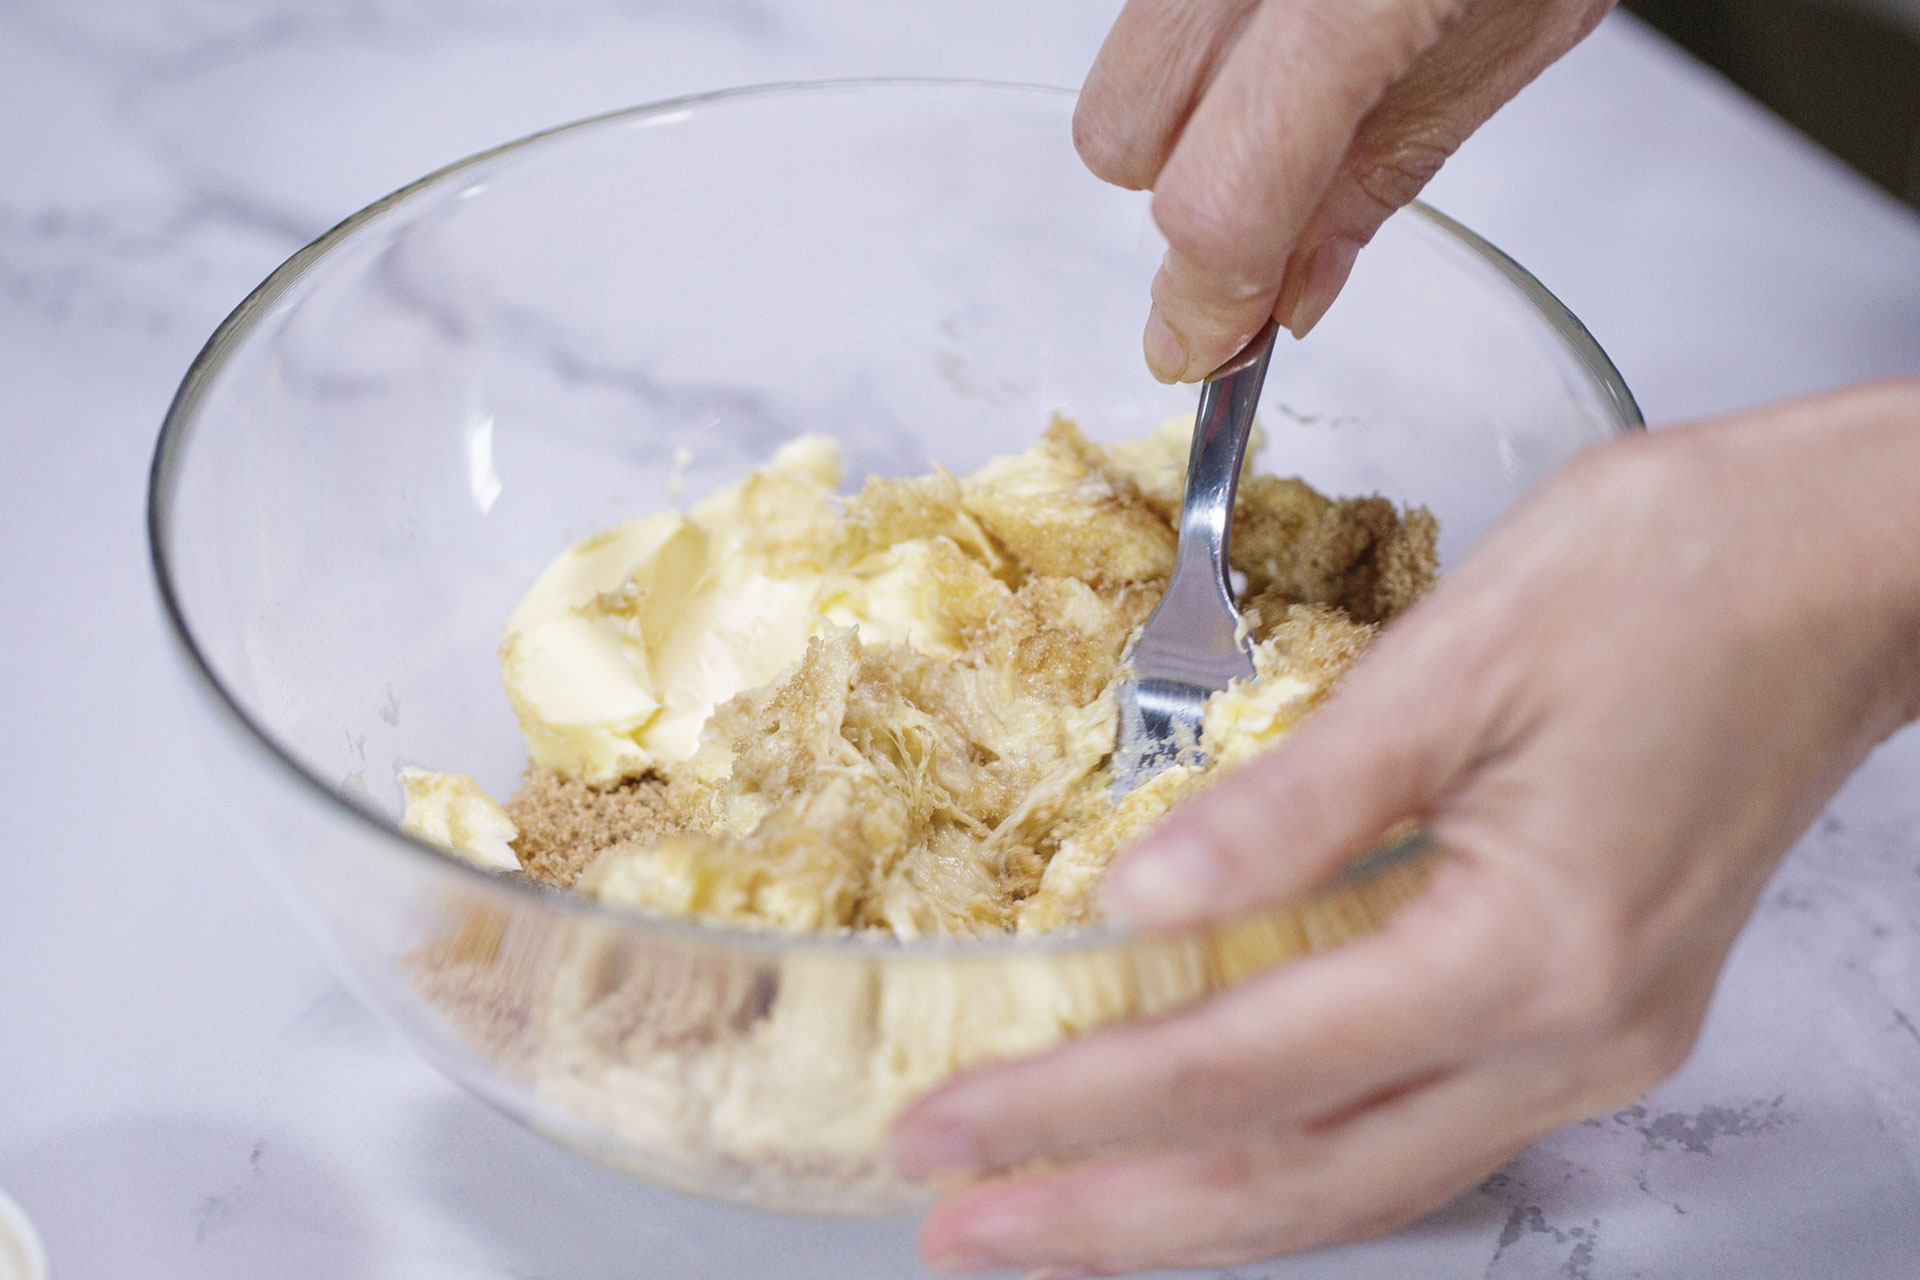 Mix the base ingredients